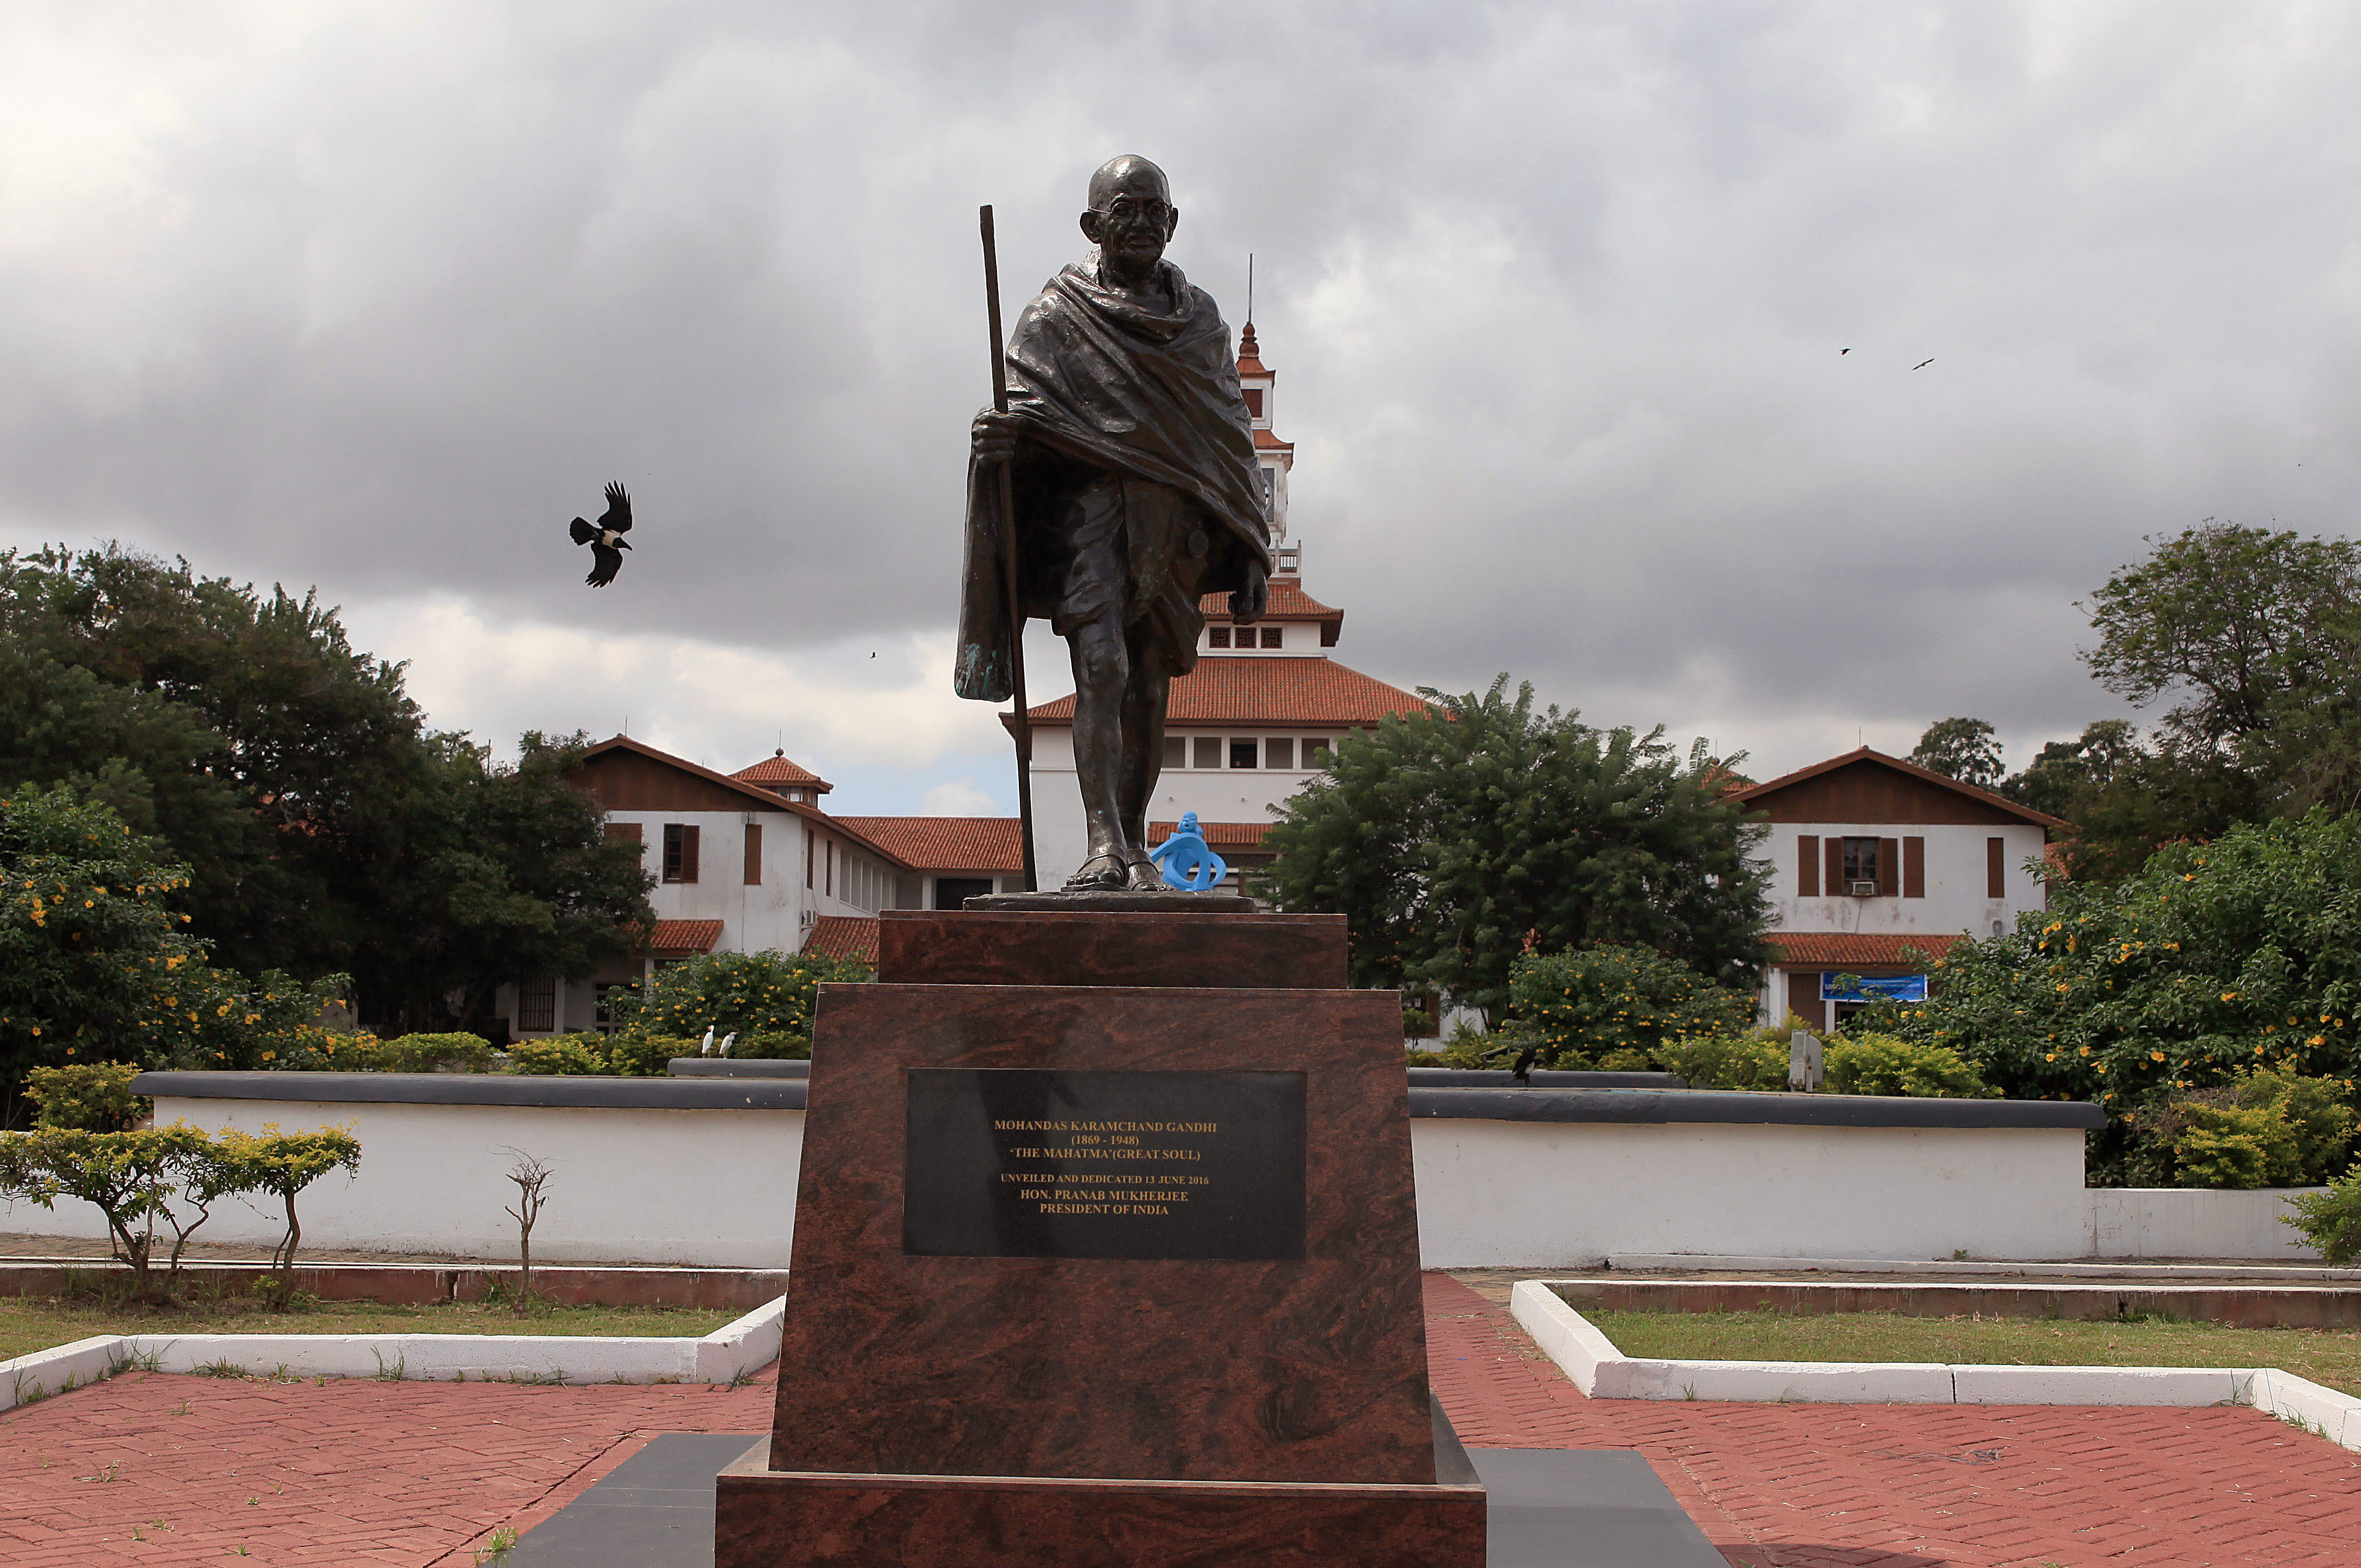 A statue of Indian independence leader Mahatma Gandhi in Accra, Ghana on Sept. 22, 2016. Professors at a university in Ghana's capital are campaigning for the removal of a new statue of Indian independence leader Mahatma Gandhi.